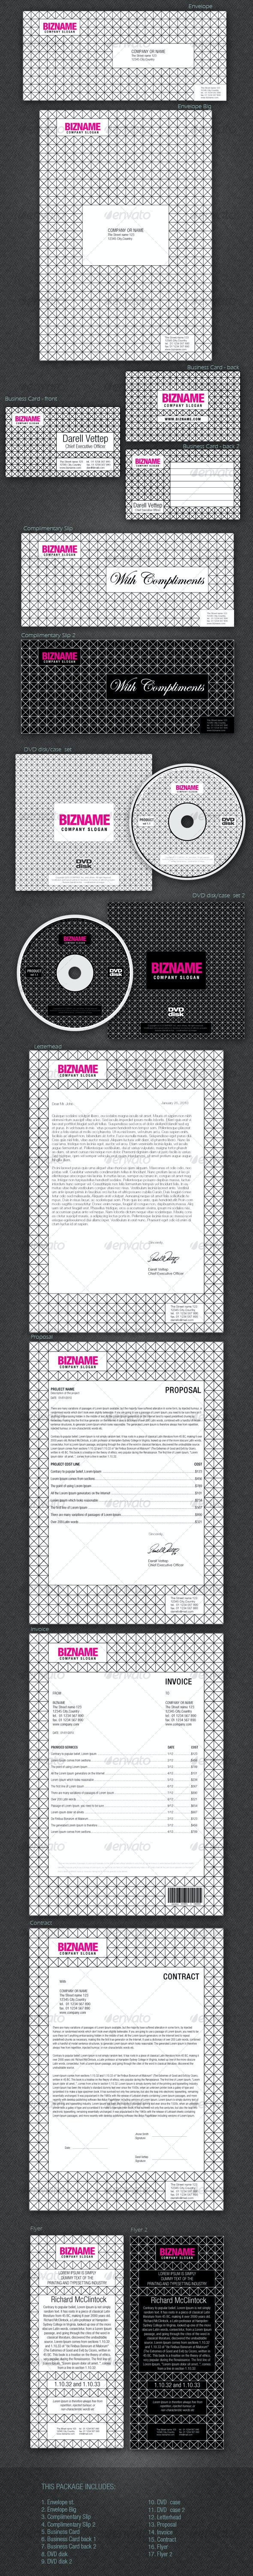 FULL CORPORATE ID PACKAGE - BIZNAME v2 - Stationery Print Templates